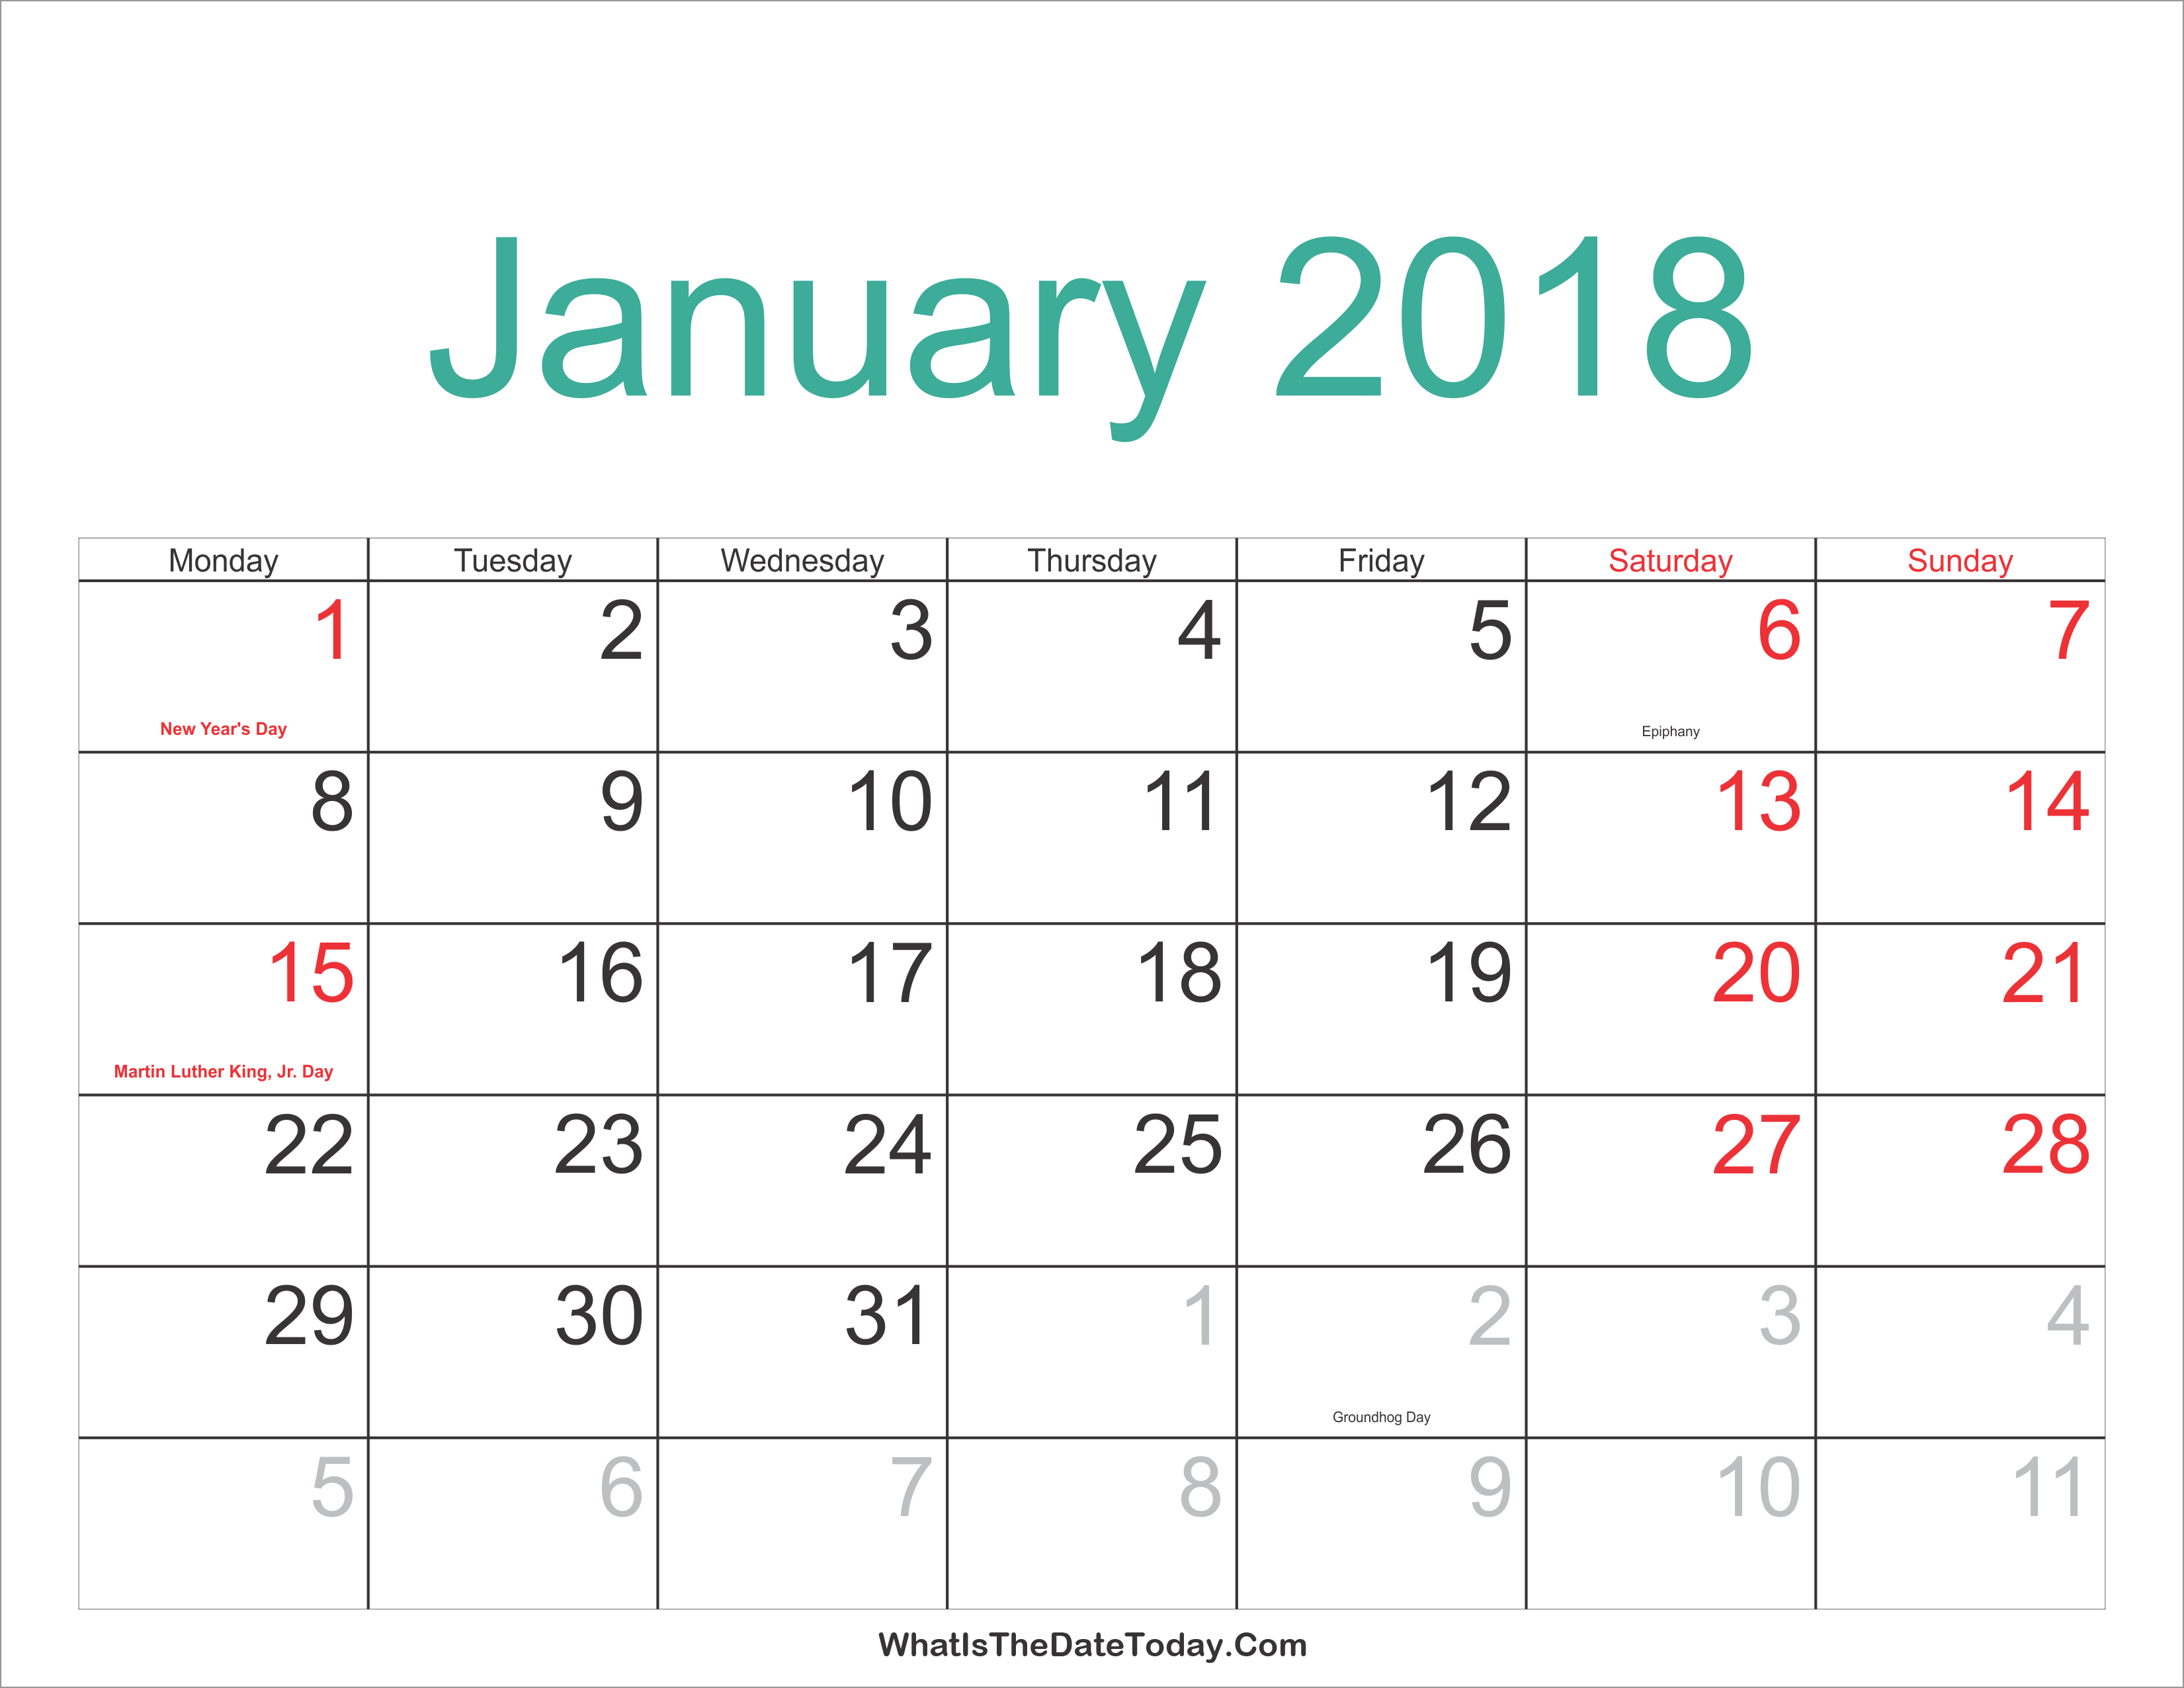 January 2018 Calendar Printable with Holidays | Whatisthedatetoday.Com